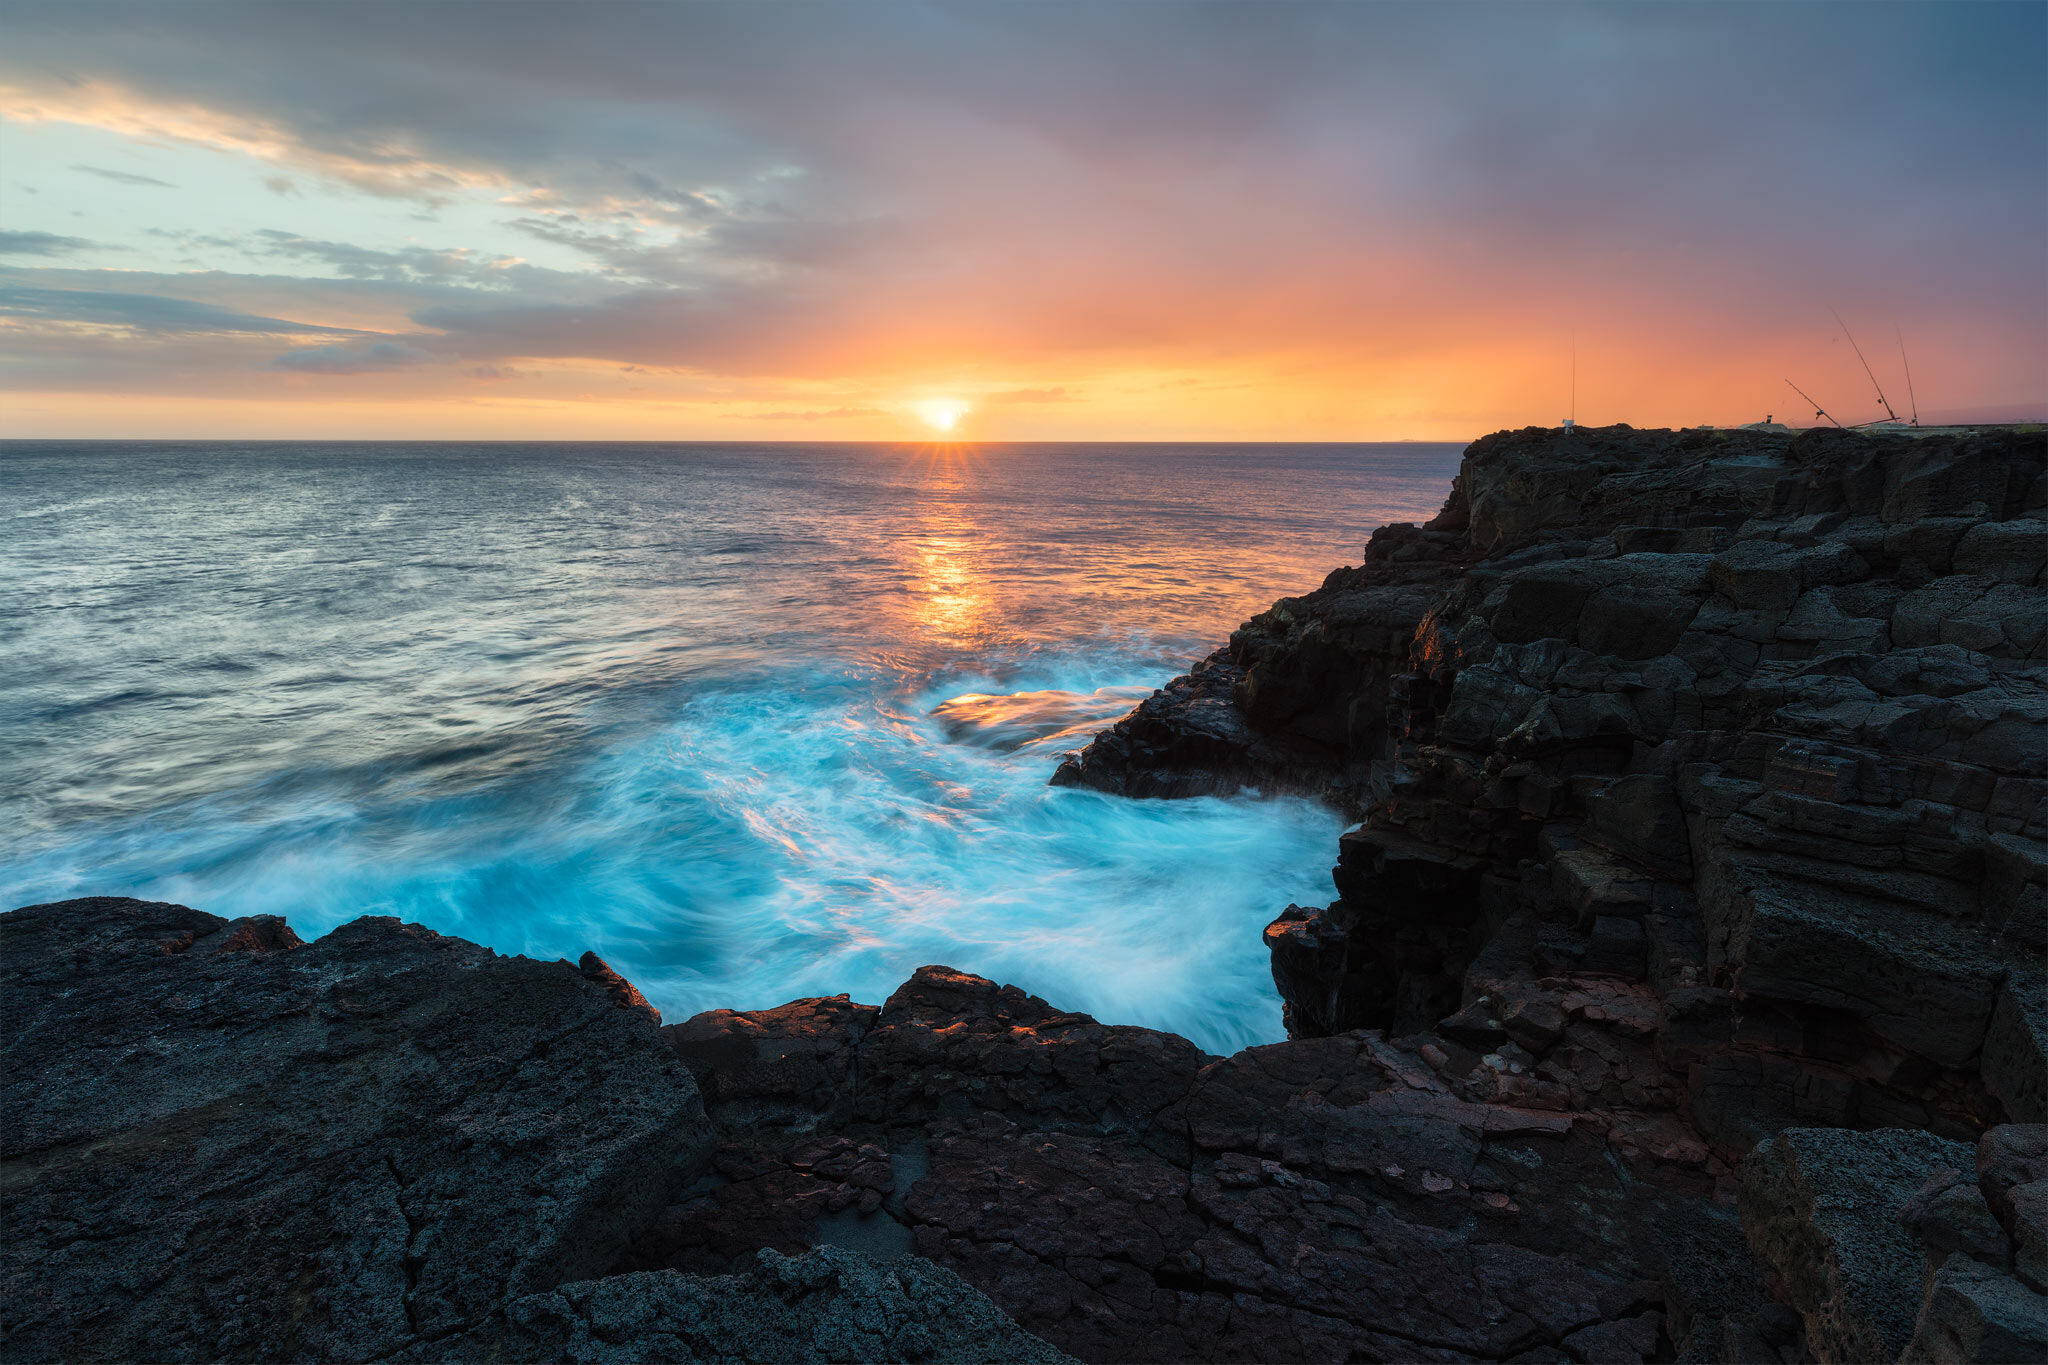 South Point is the most southern part of Big Island, Hawaii and a popular place to fish. In this image, I captured a hazy sunset...